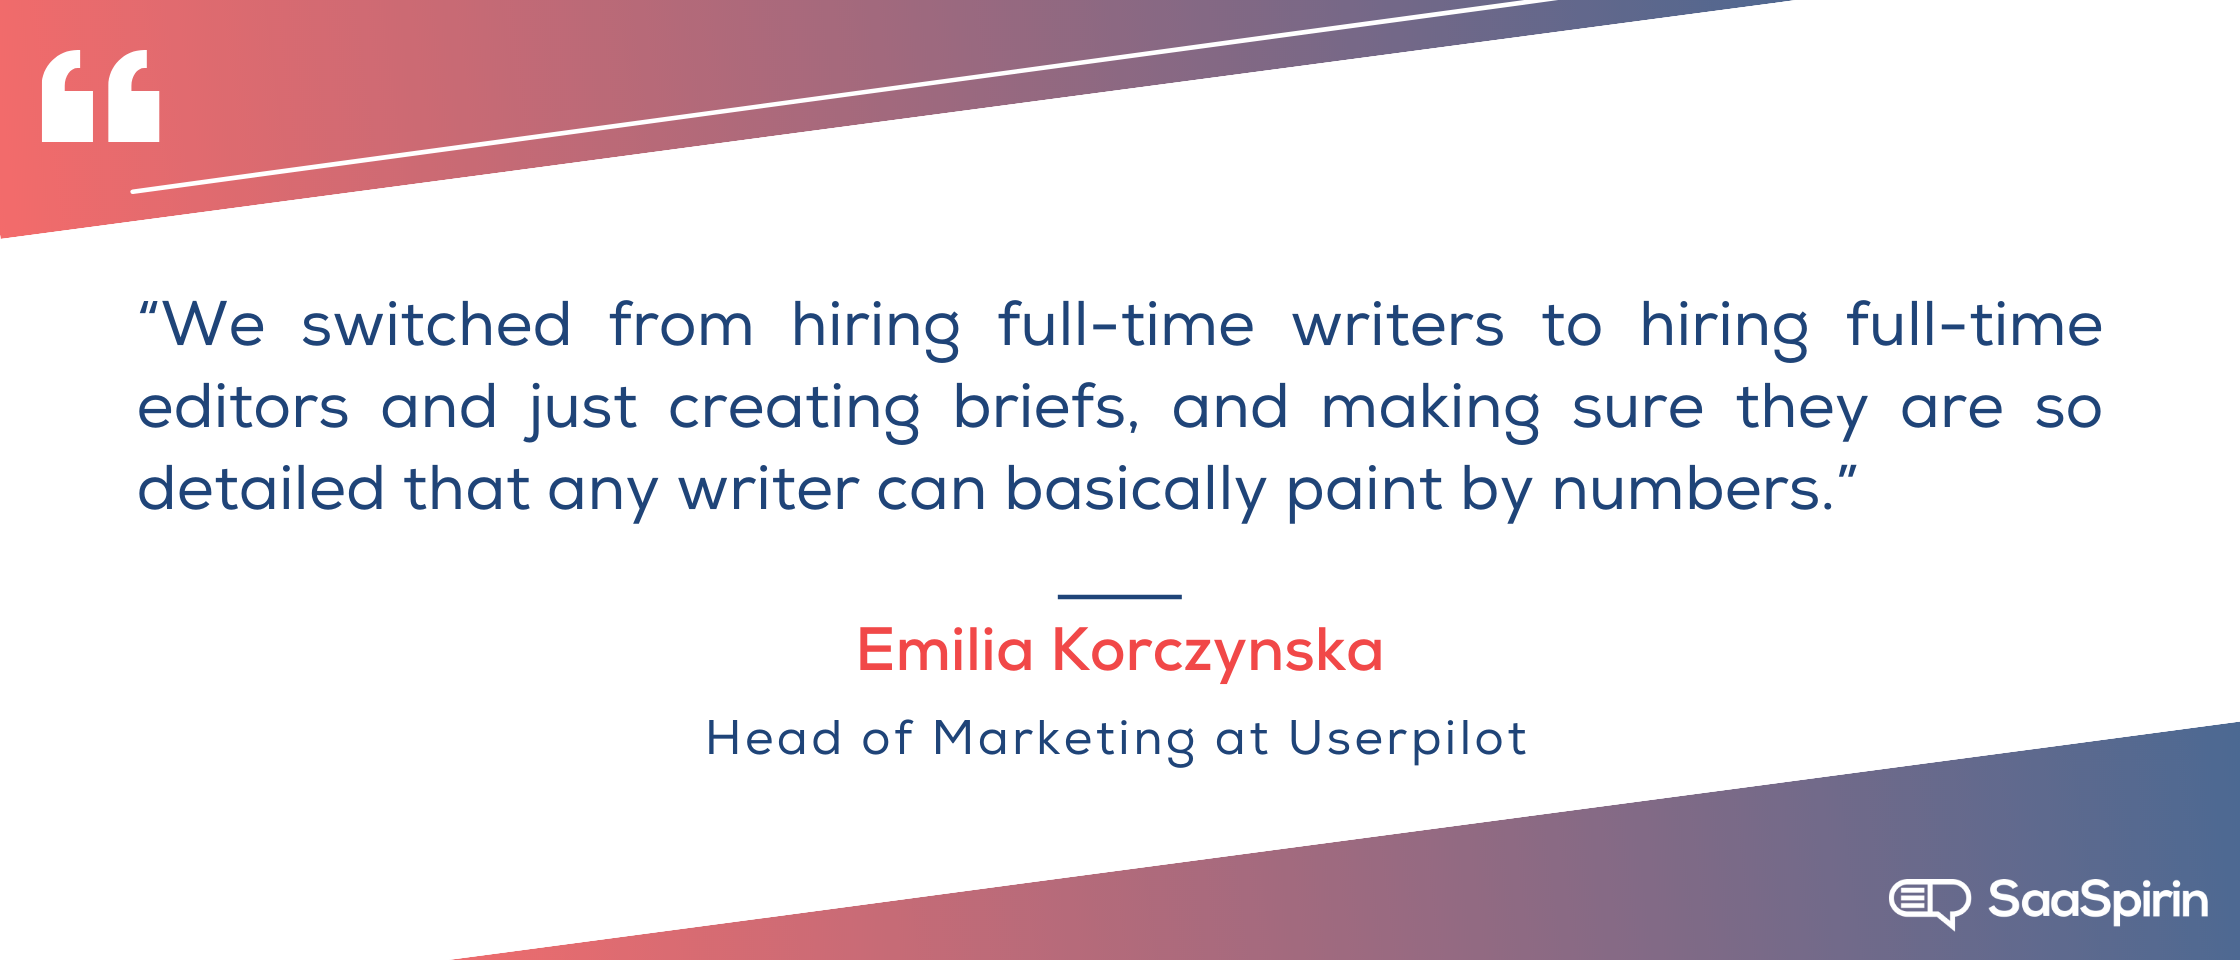 We-switched-from-hiring-full-time-writers-to-hiring-full-time-editors-and-just-creating-briefs-and-making-sure-they-are-so-detailed-that-any-writer-can-basically-paint-by-numbers.png